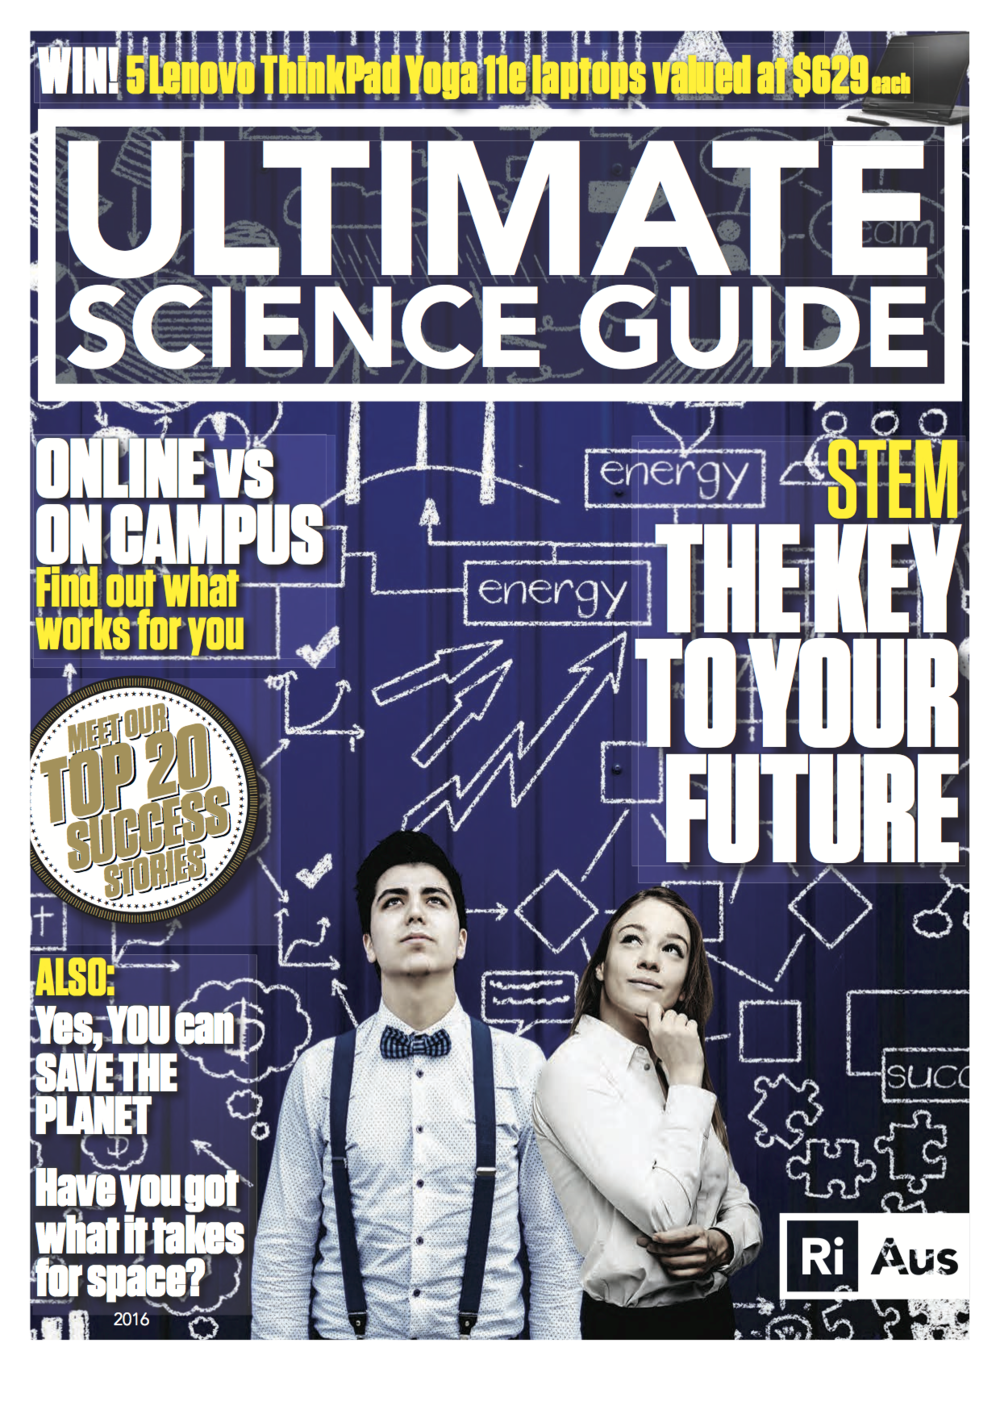 The Ultimate Science Guide outlines career opportunities and undergraduate courses in science, IT, engineering and maths.